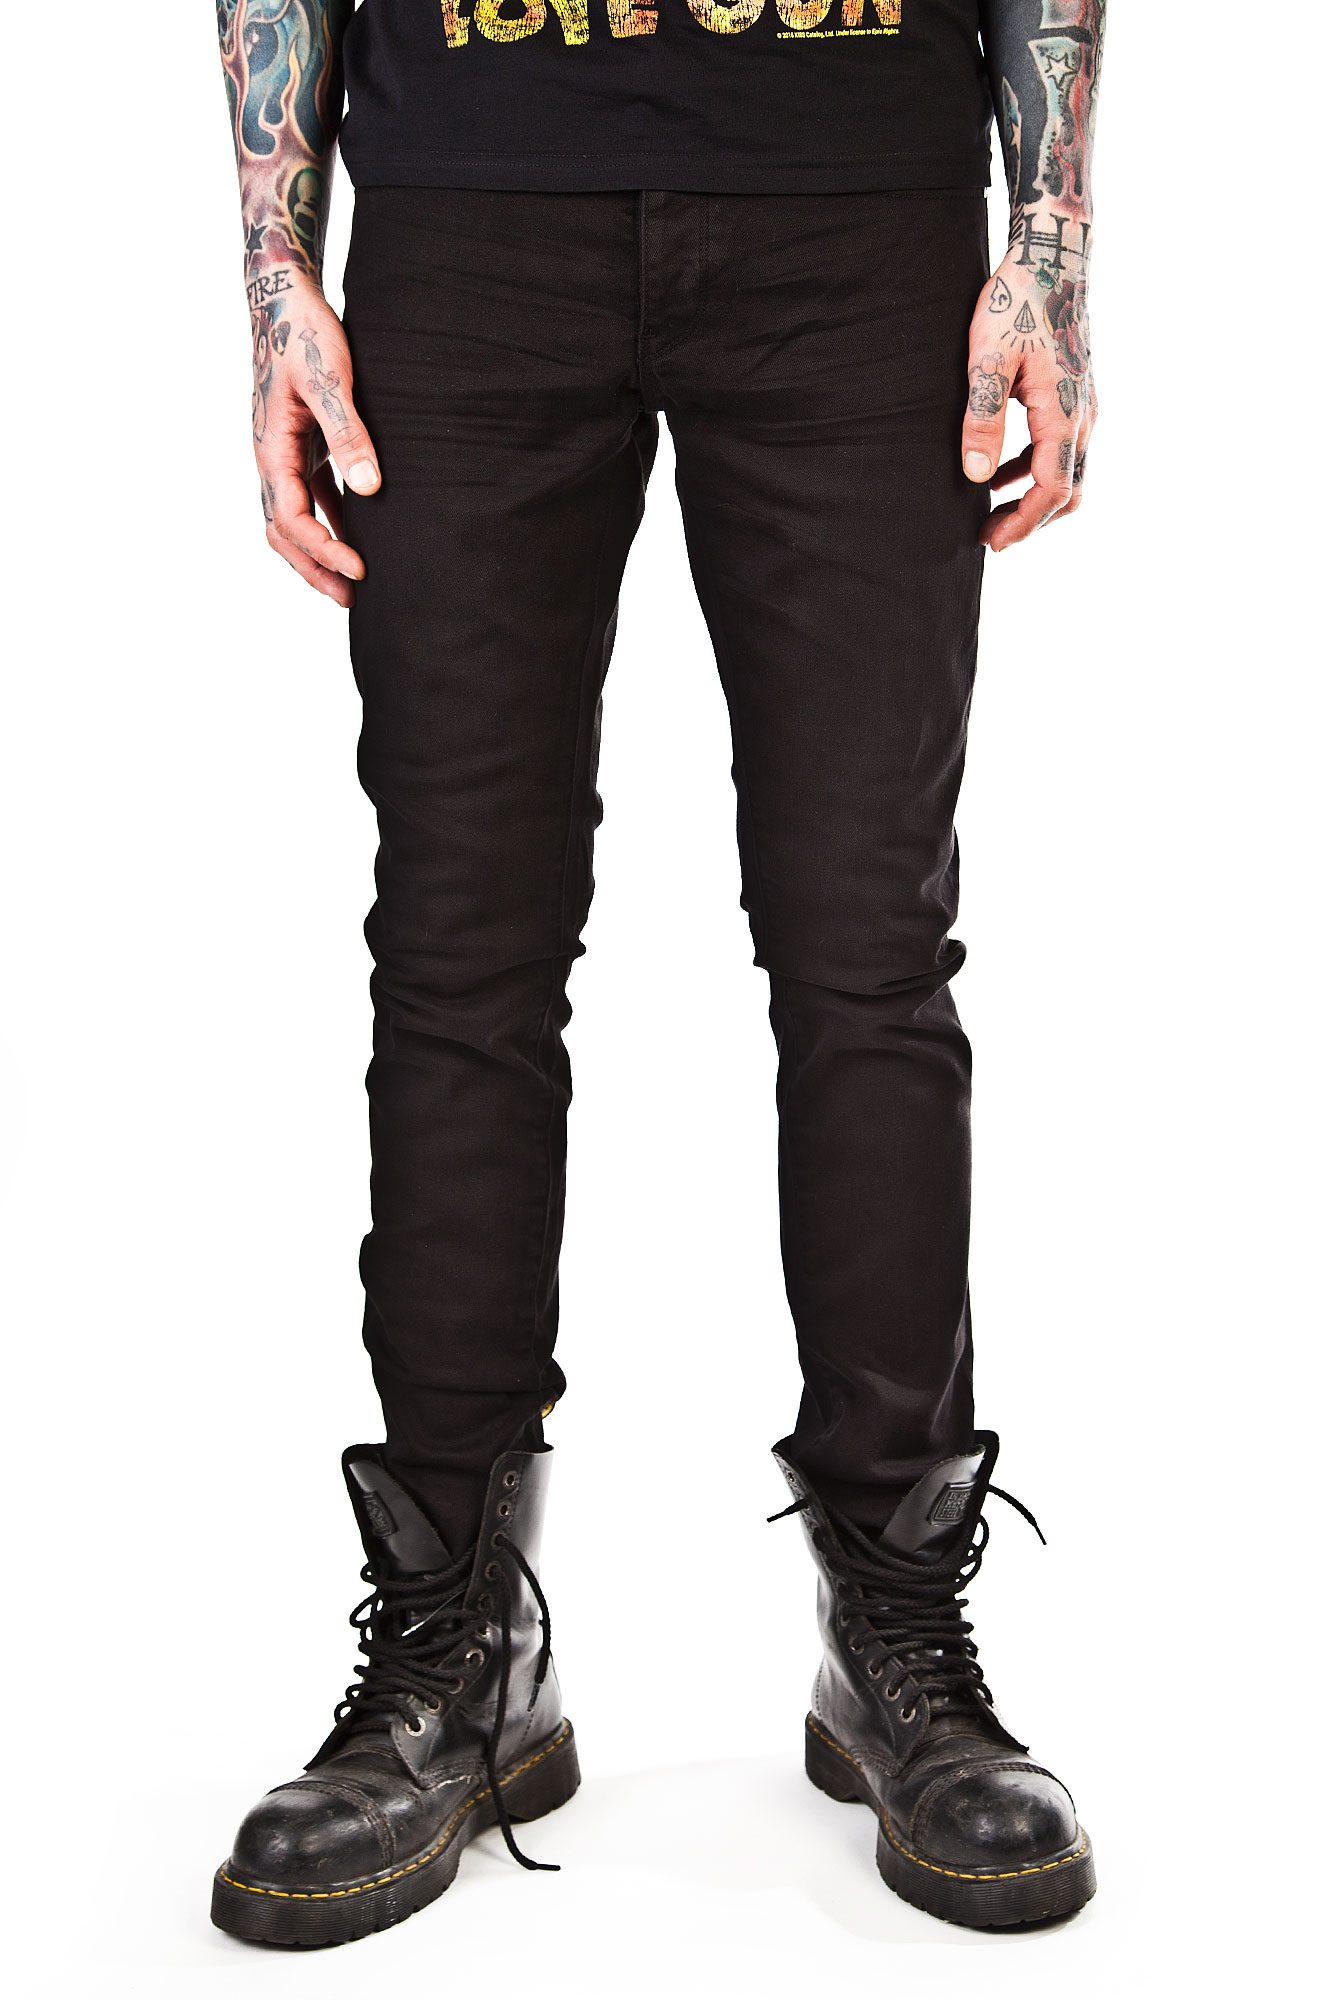 JUNKIE SLIM STRETCH DENIM